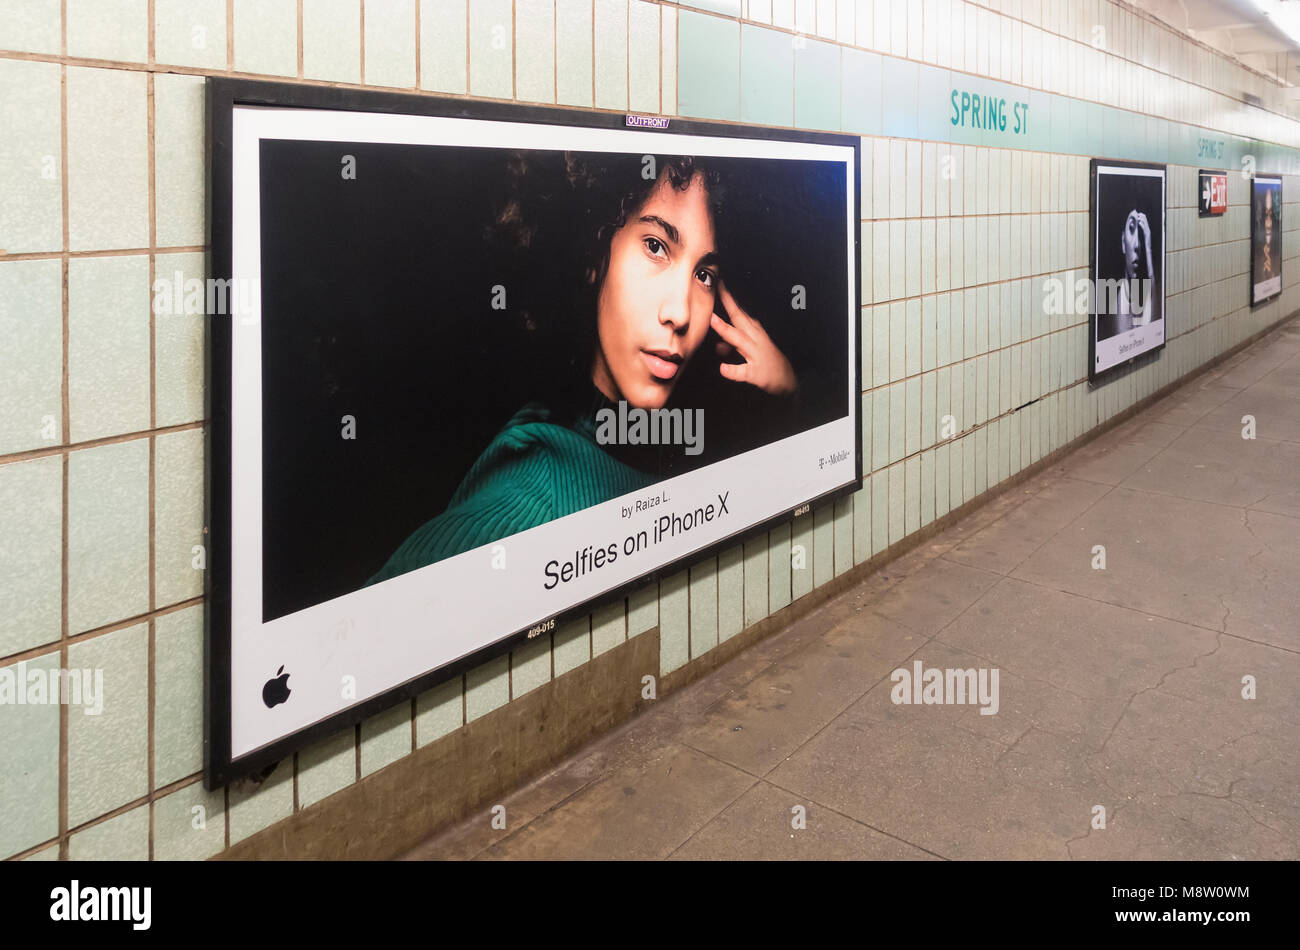 iPhone ads in the Spring Street Subway station promoting selfies made with the iPhone X (10) - Stock Image